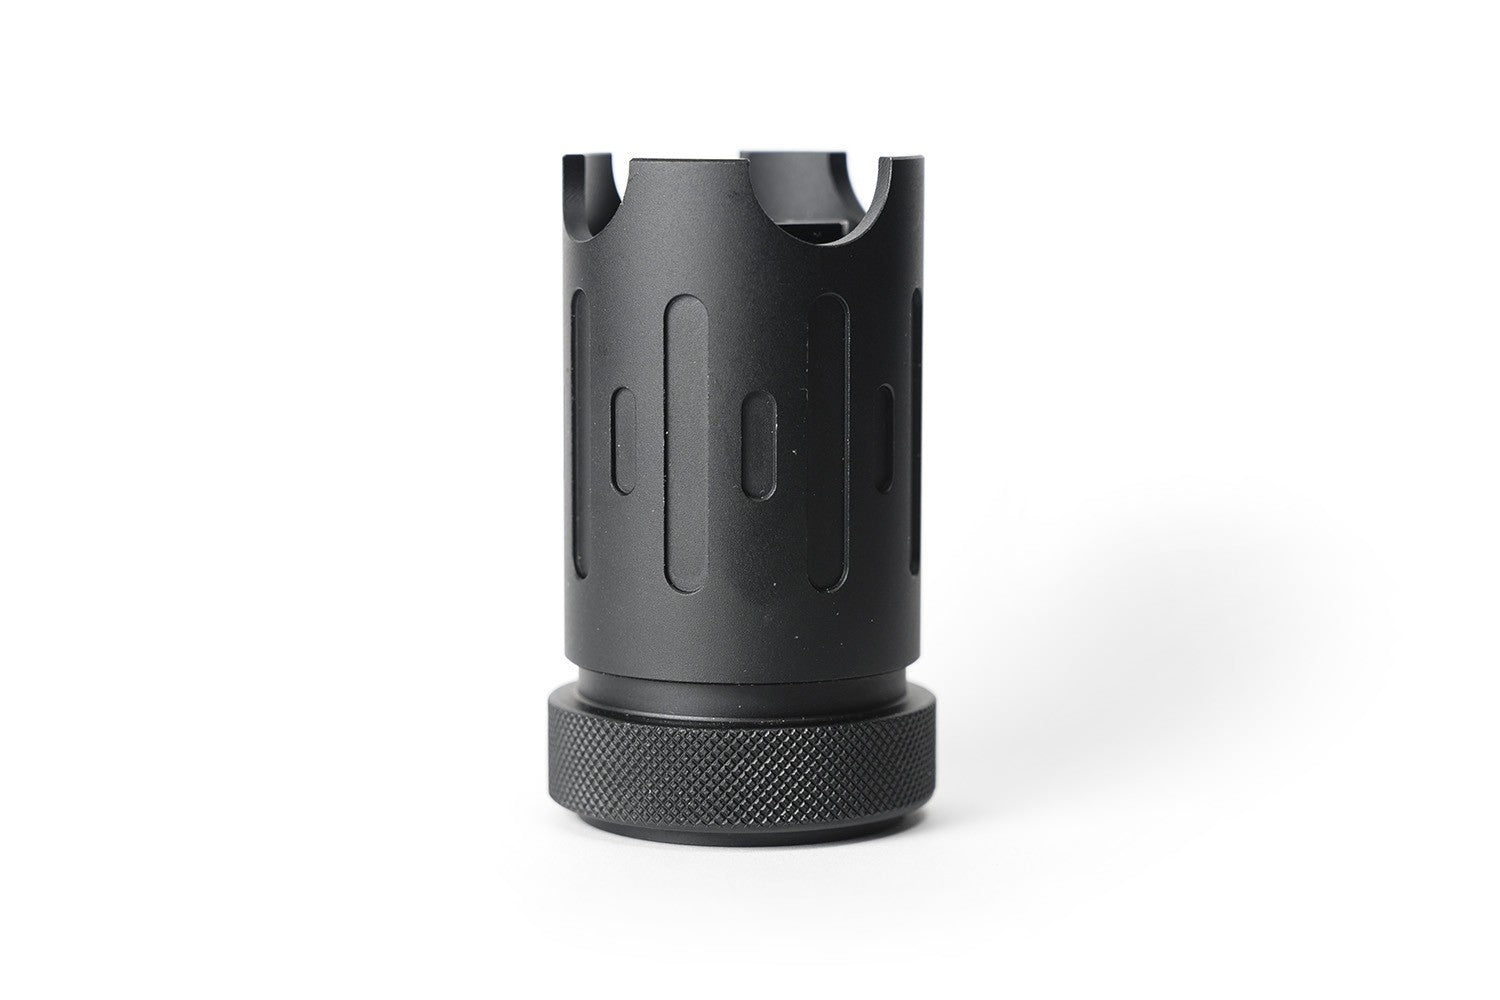 SilencerCo Licensed Blast Shield Muzzle Device